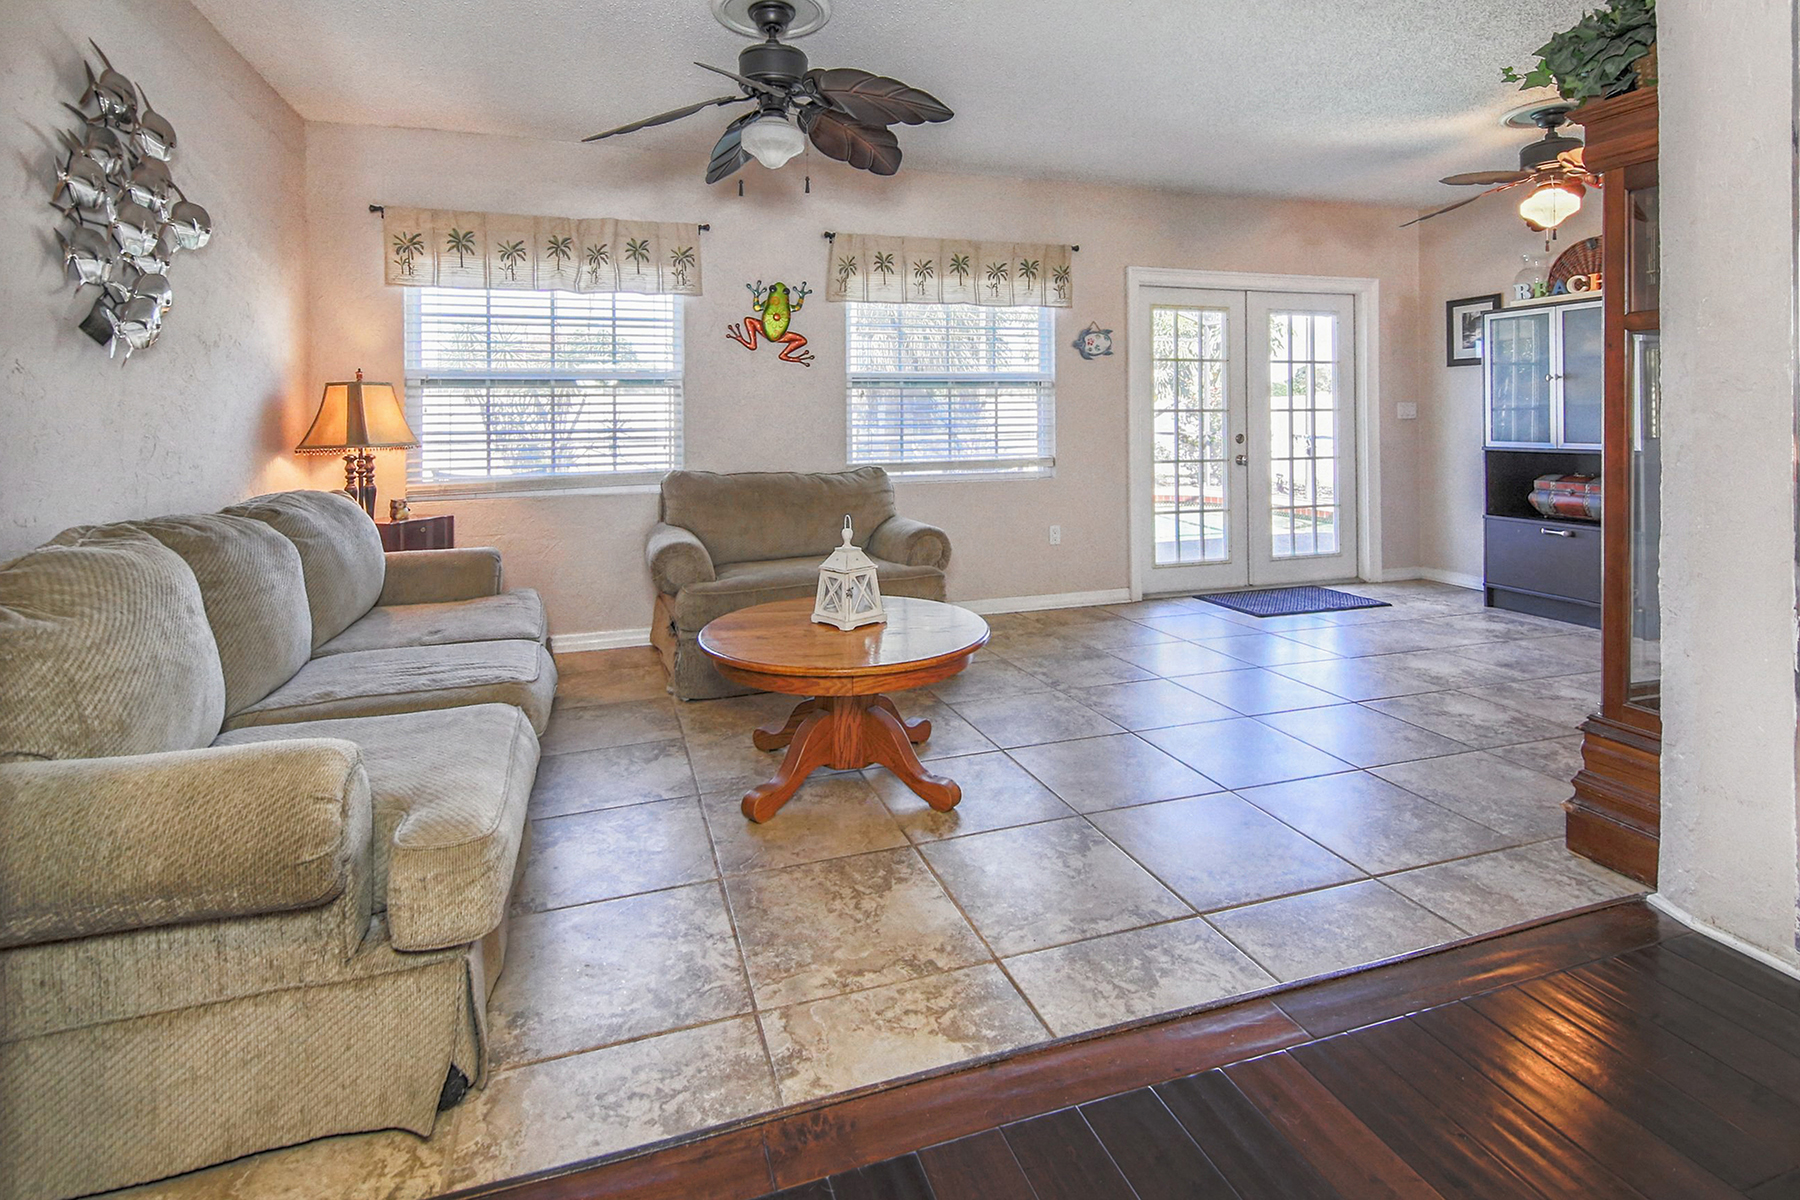 Additional photo for property listing at VILLAGE GREEN - BRADENTON 6906  18th Ave  W Bradenton, Florida 34209 United States